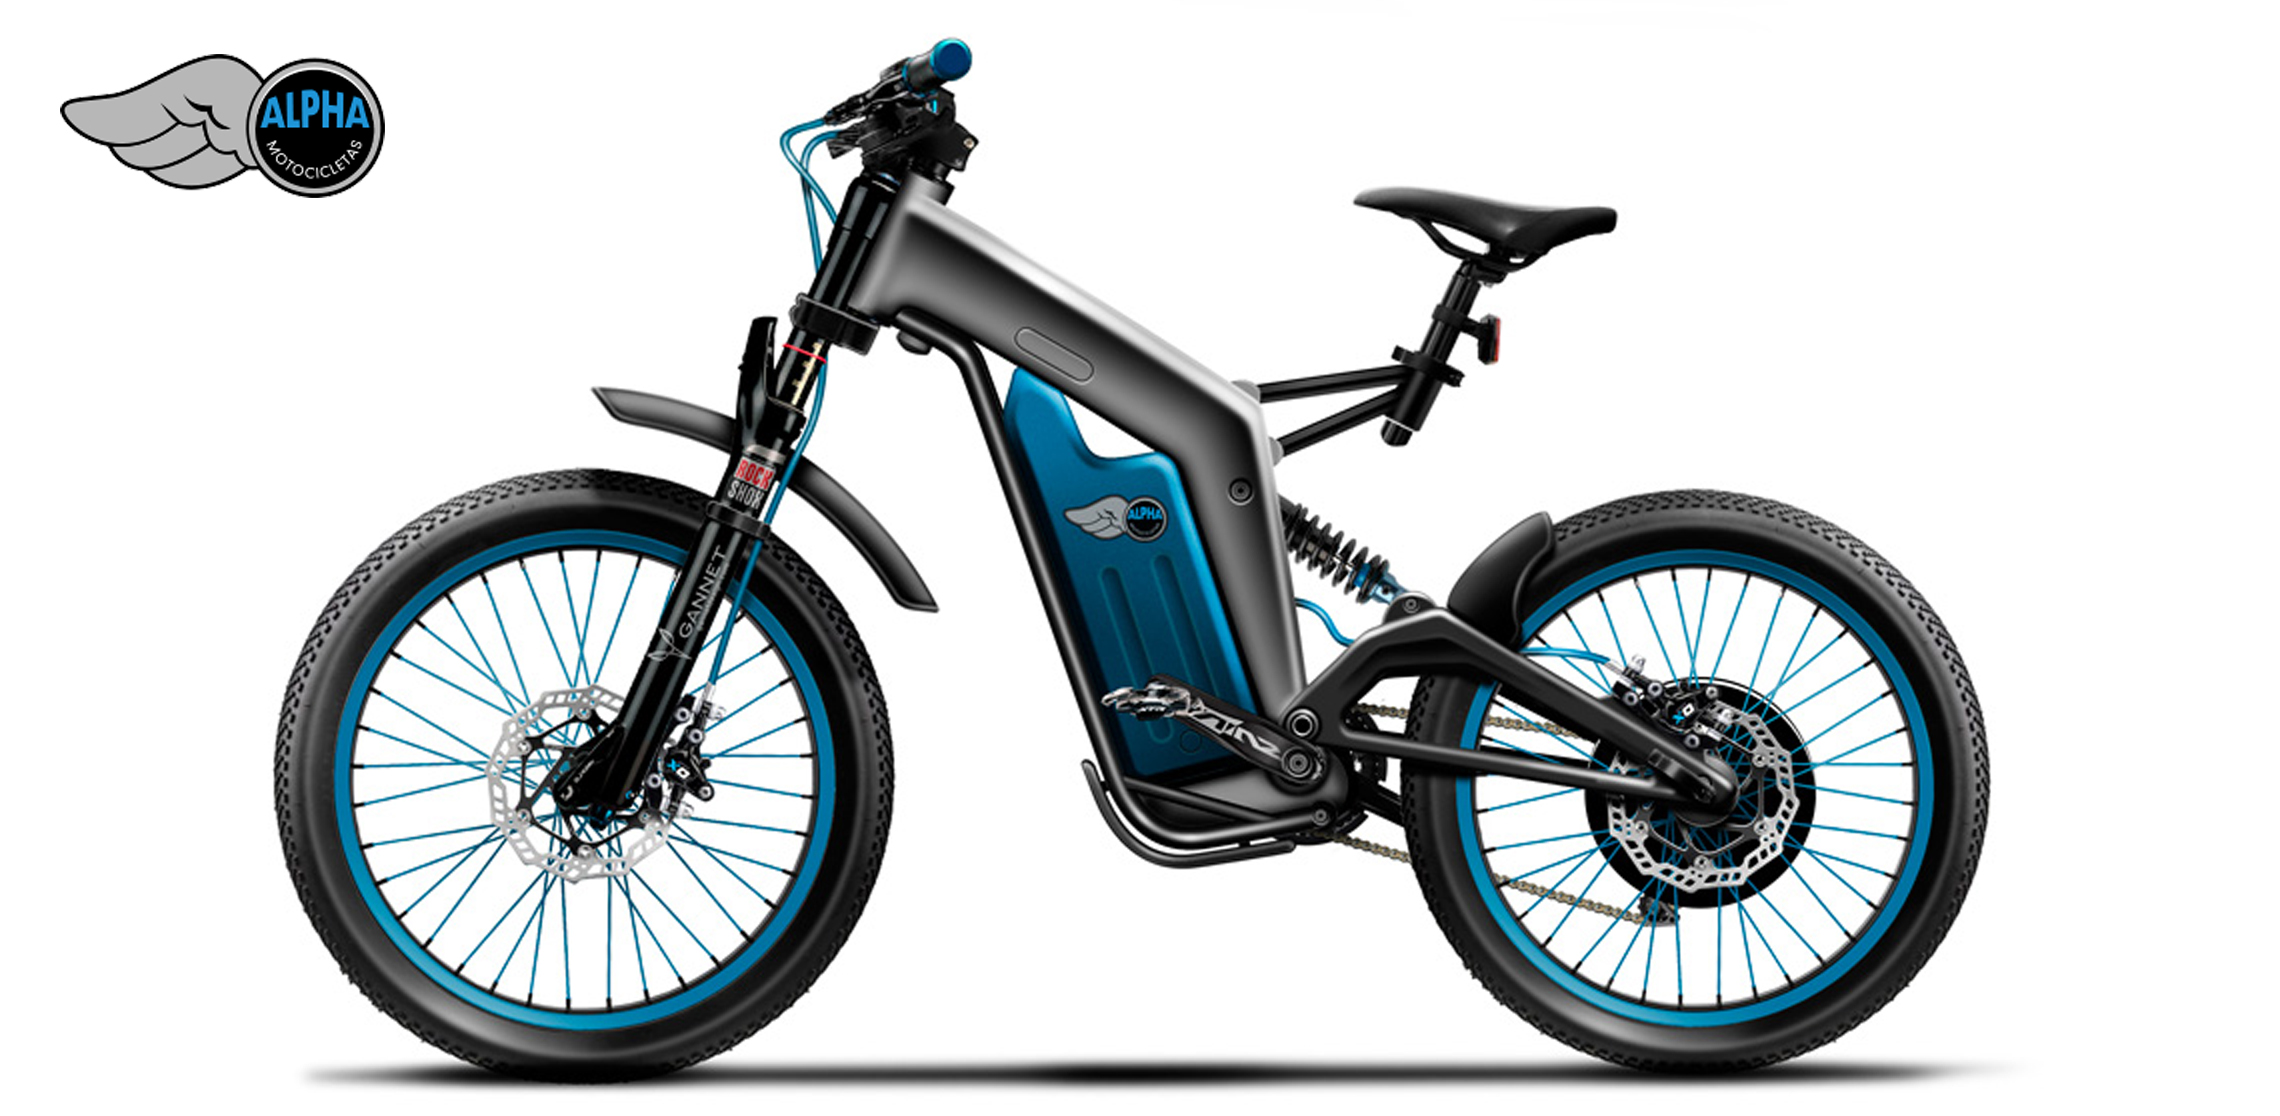 alpha wildcat 100 km h mit einem ebike emtb. Black Bedroom Furniture Sets. Home Design Ideas